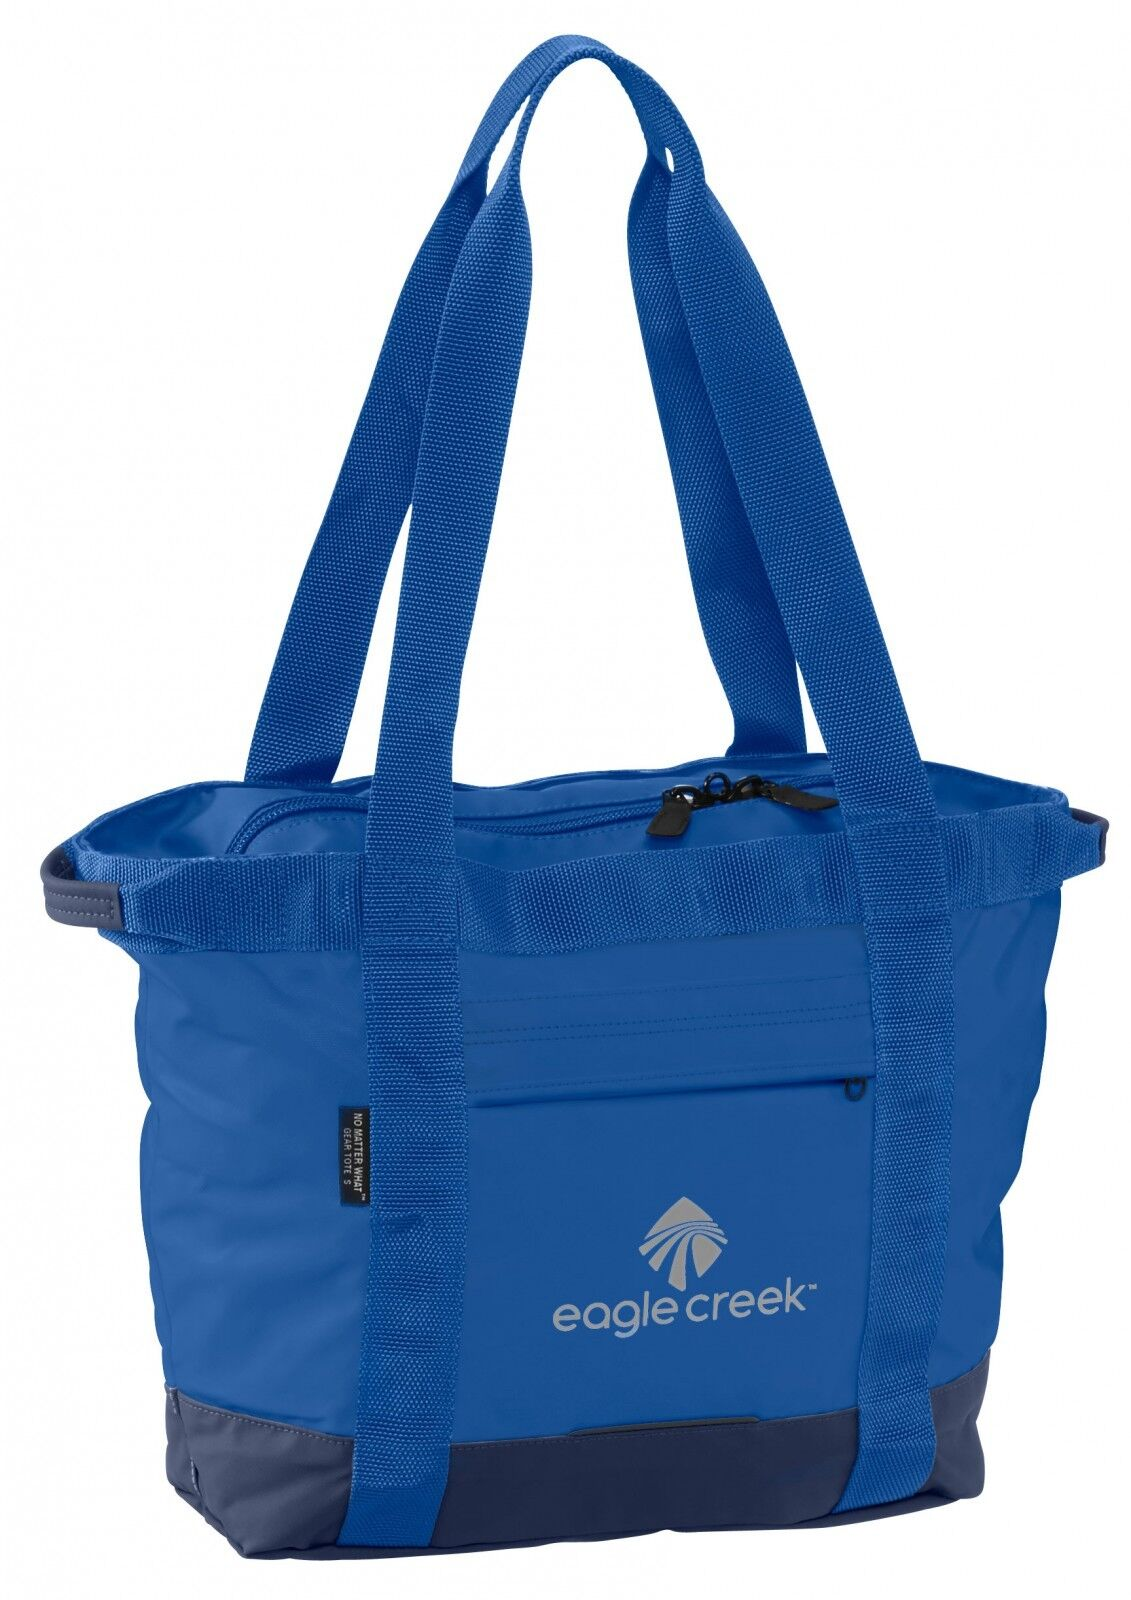 Eagle creek Shopper Borsa No Matter What Gear Tote S Cobalt